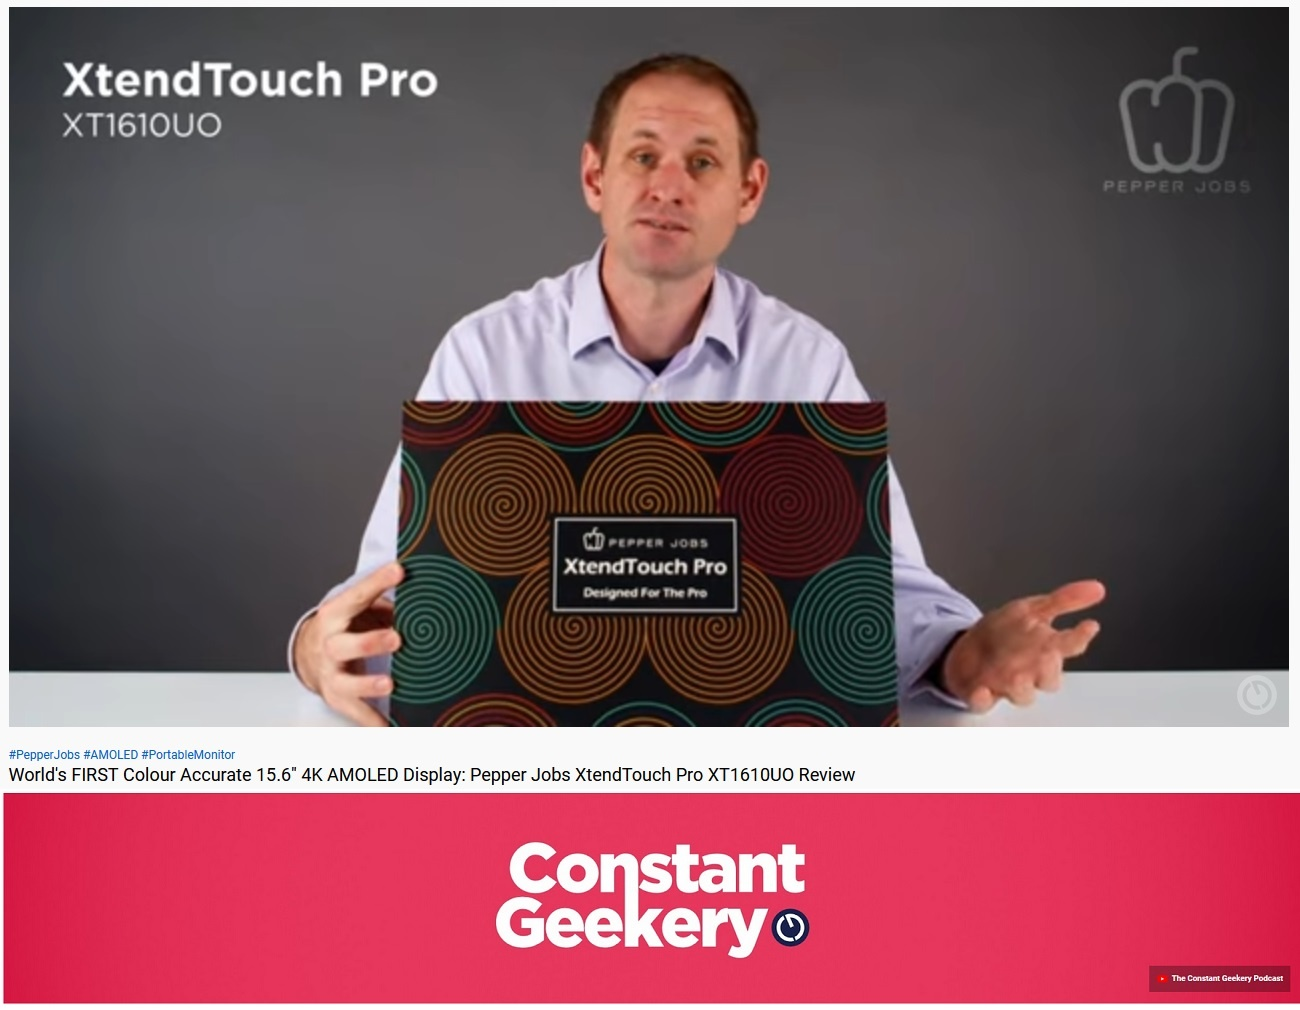 Review from Constant Geekery of the XTENDTOUCH PRO AMOLED Portable Monitor